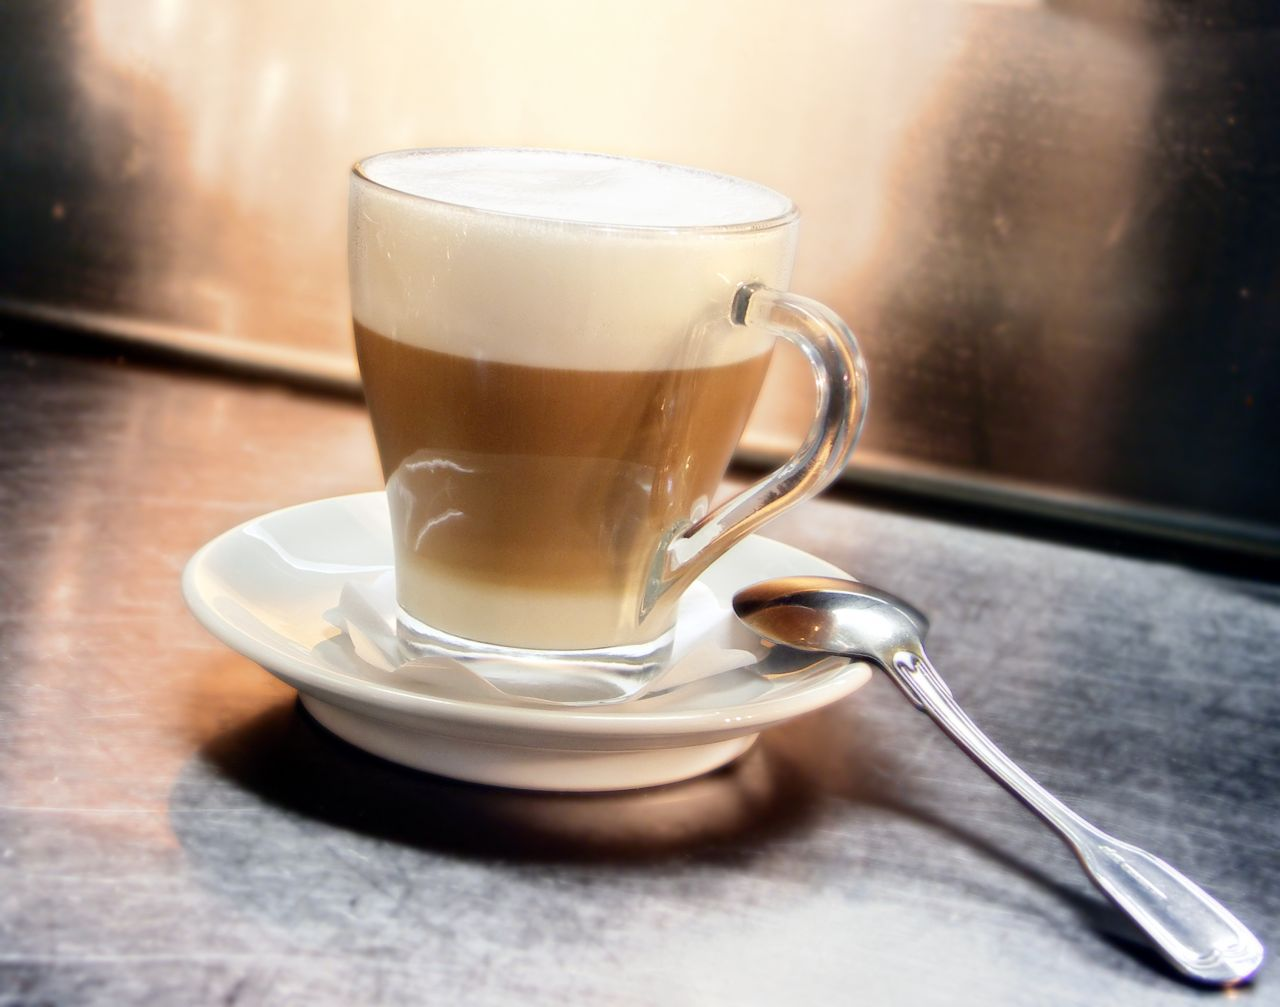 People who prefer latte or other types of coffee with milk or sugar are people pleasers and comfort seekers, the study showed. They go out of their way to help others but might forget to take care of themselves.